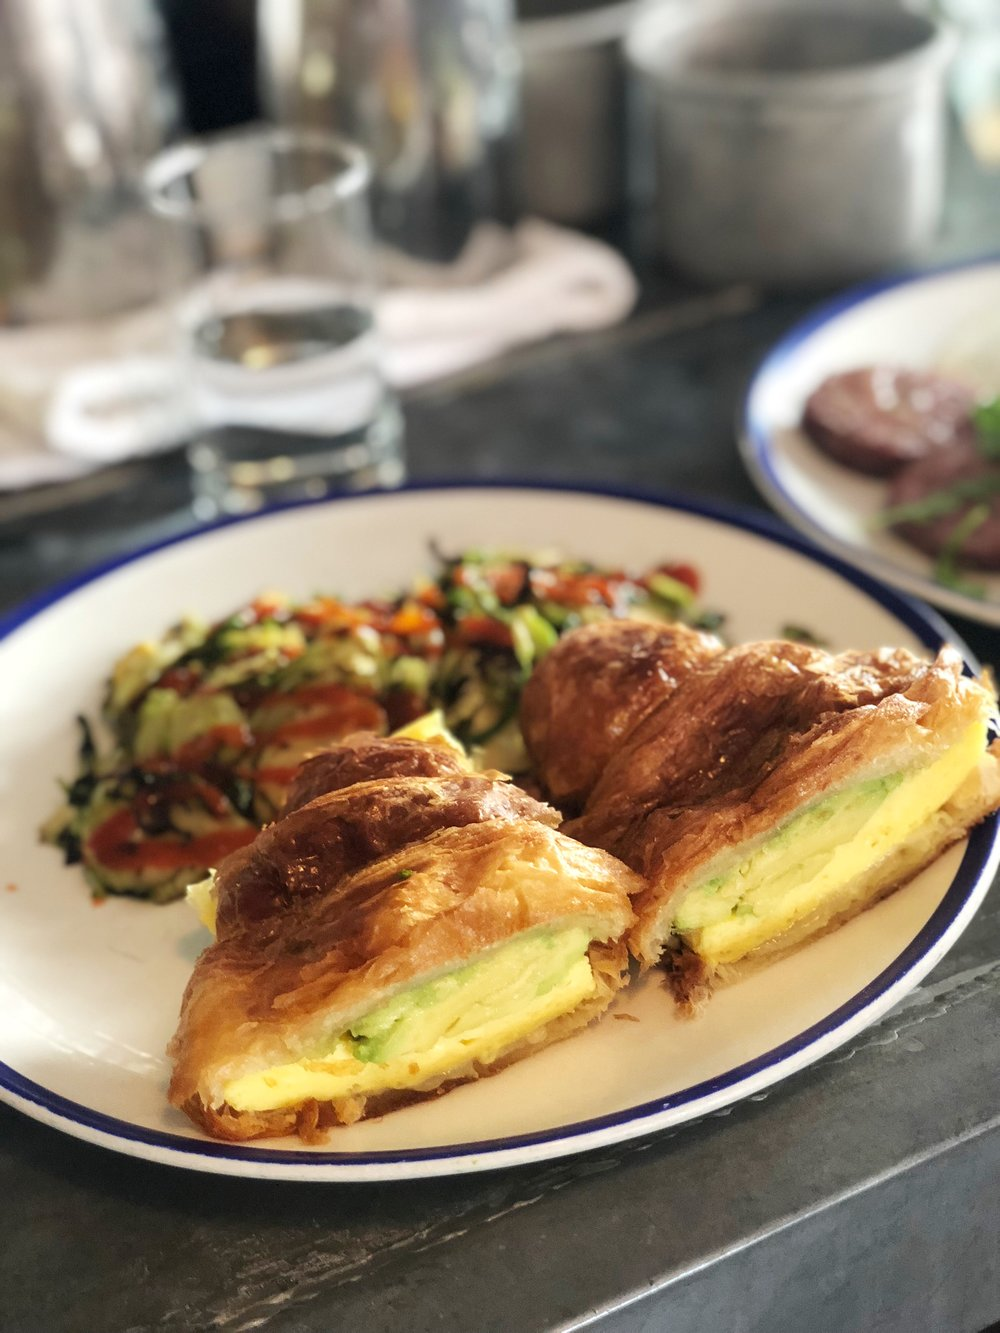 Egg croissant sandwich with sriracha brussels sprouts